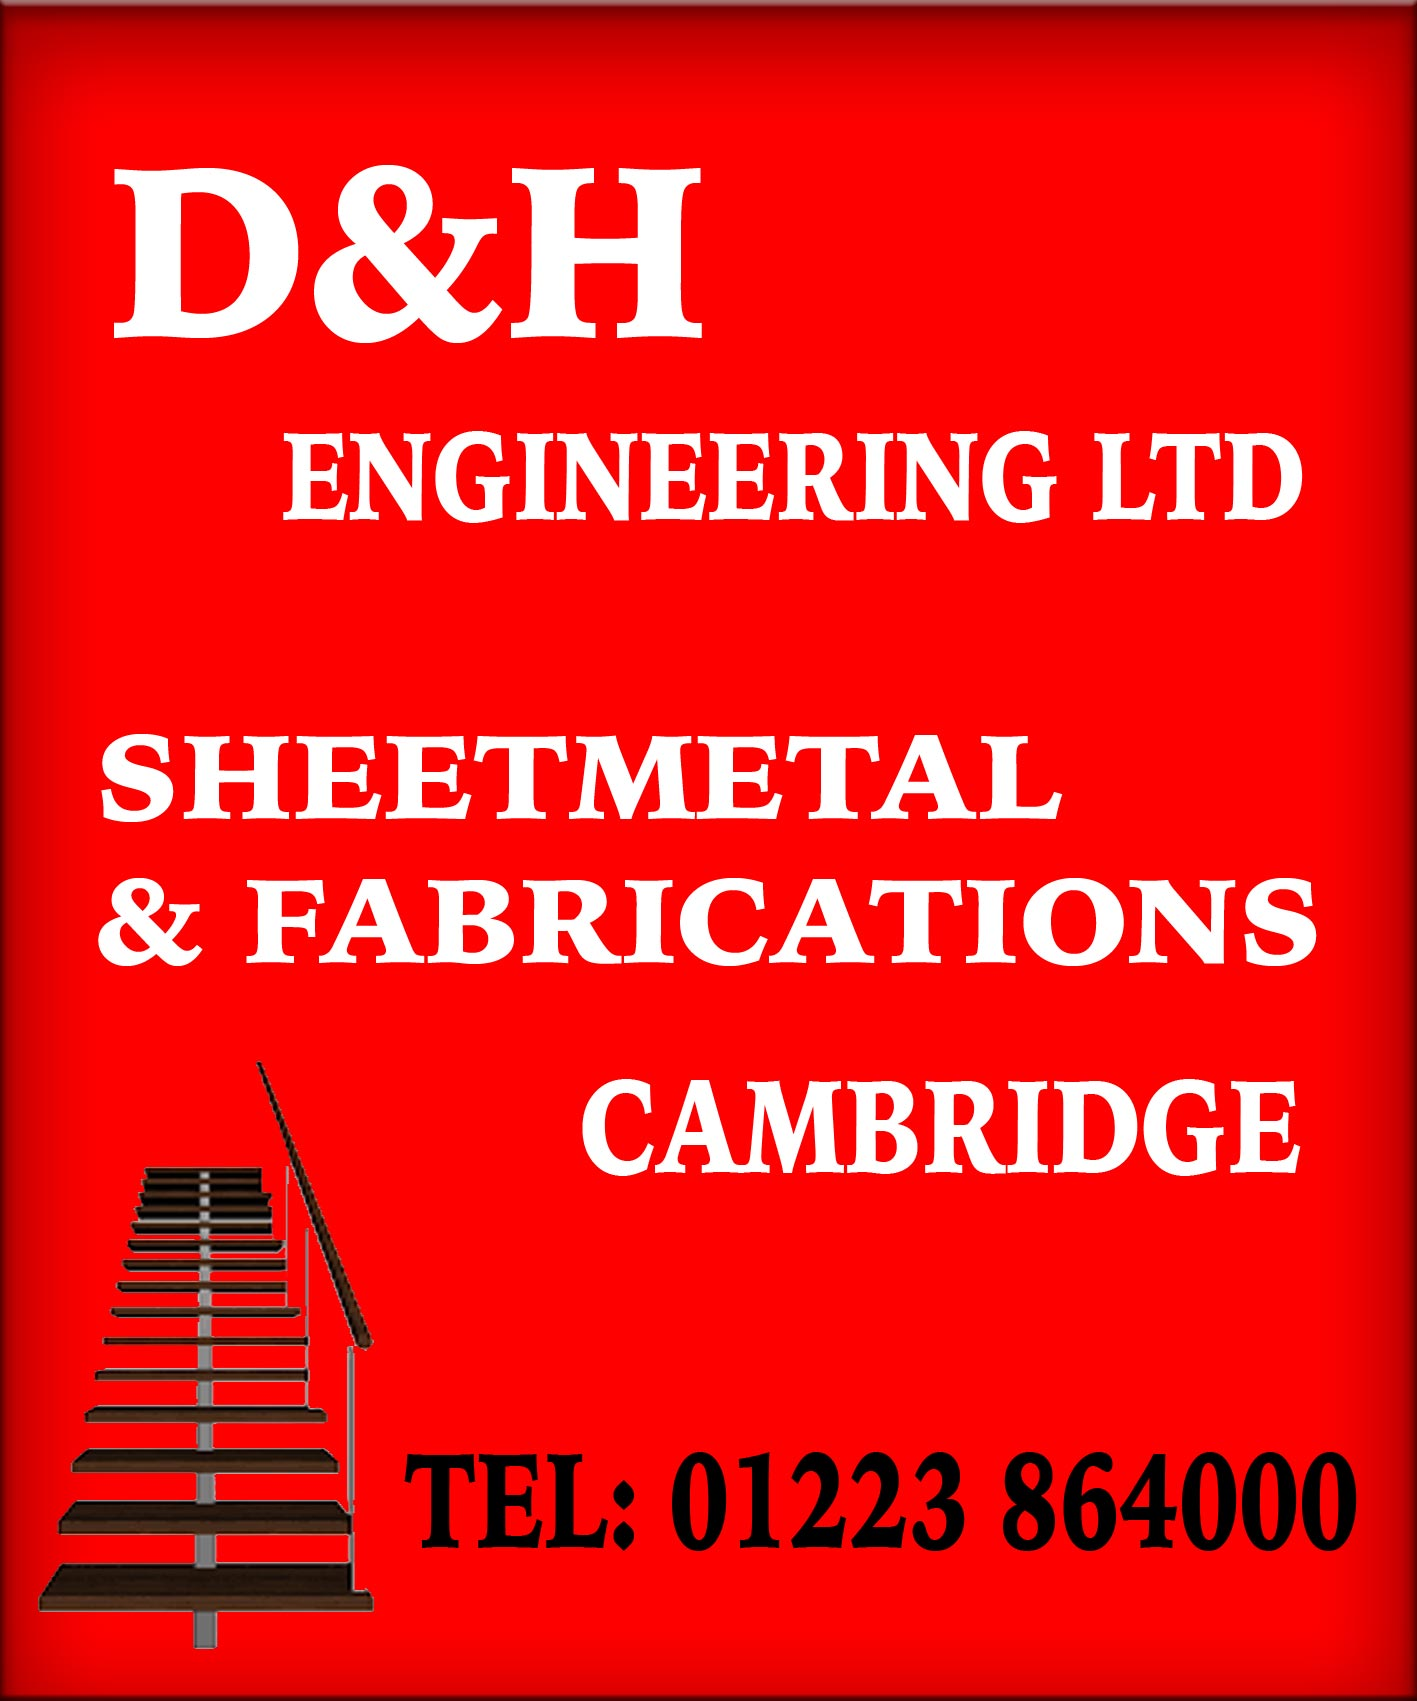 D&H Engineering Ltd